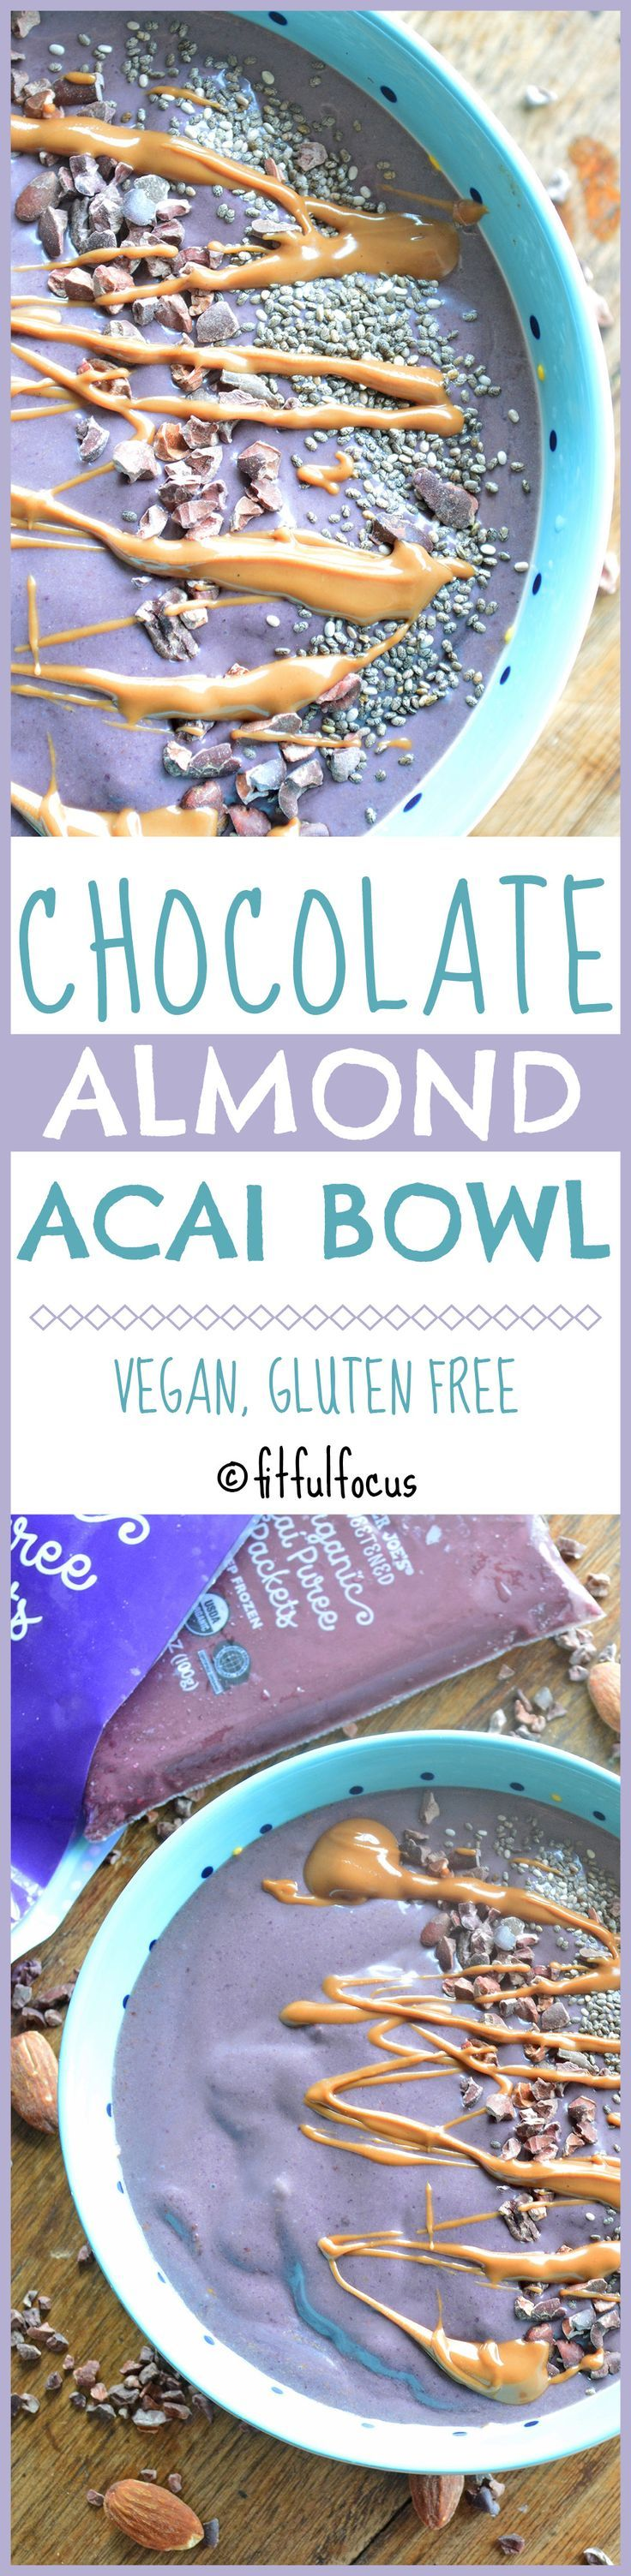 Chocolate Almond Acai Bowl | Smoothie Bowl | Easy Recipes | Vegan Snacks | Acai Recipes | Chocolate Snacks | Gluten Free Recipes | Expensive Smoothies for Less | Trader Joe's Pureed Acai | Superfood Recipes